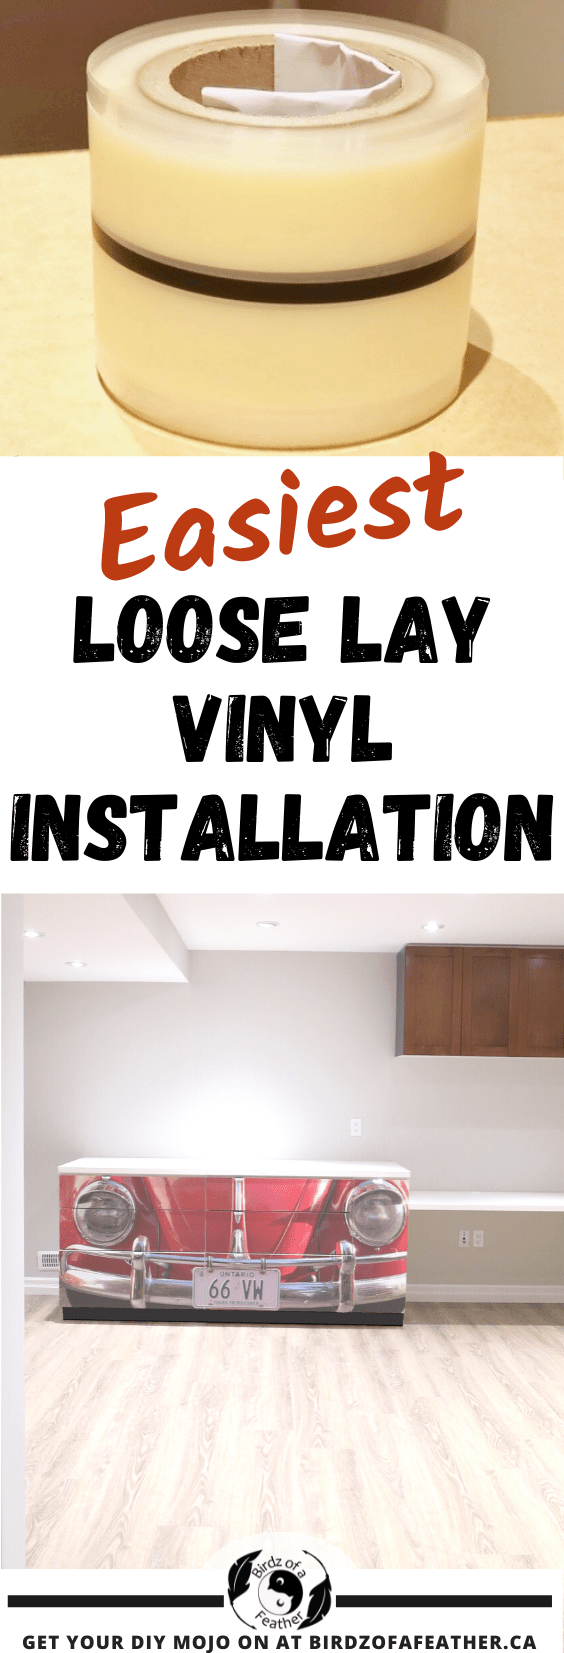 Today we're giving you the ultimate guide on our loose lay vinyl plank flooring installation. You learn the ins and out of installing loose lay vinyl plank; it's the easiest flooring that any DIYer can install!